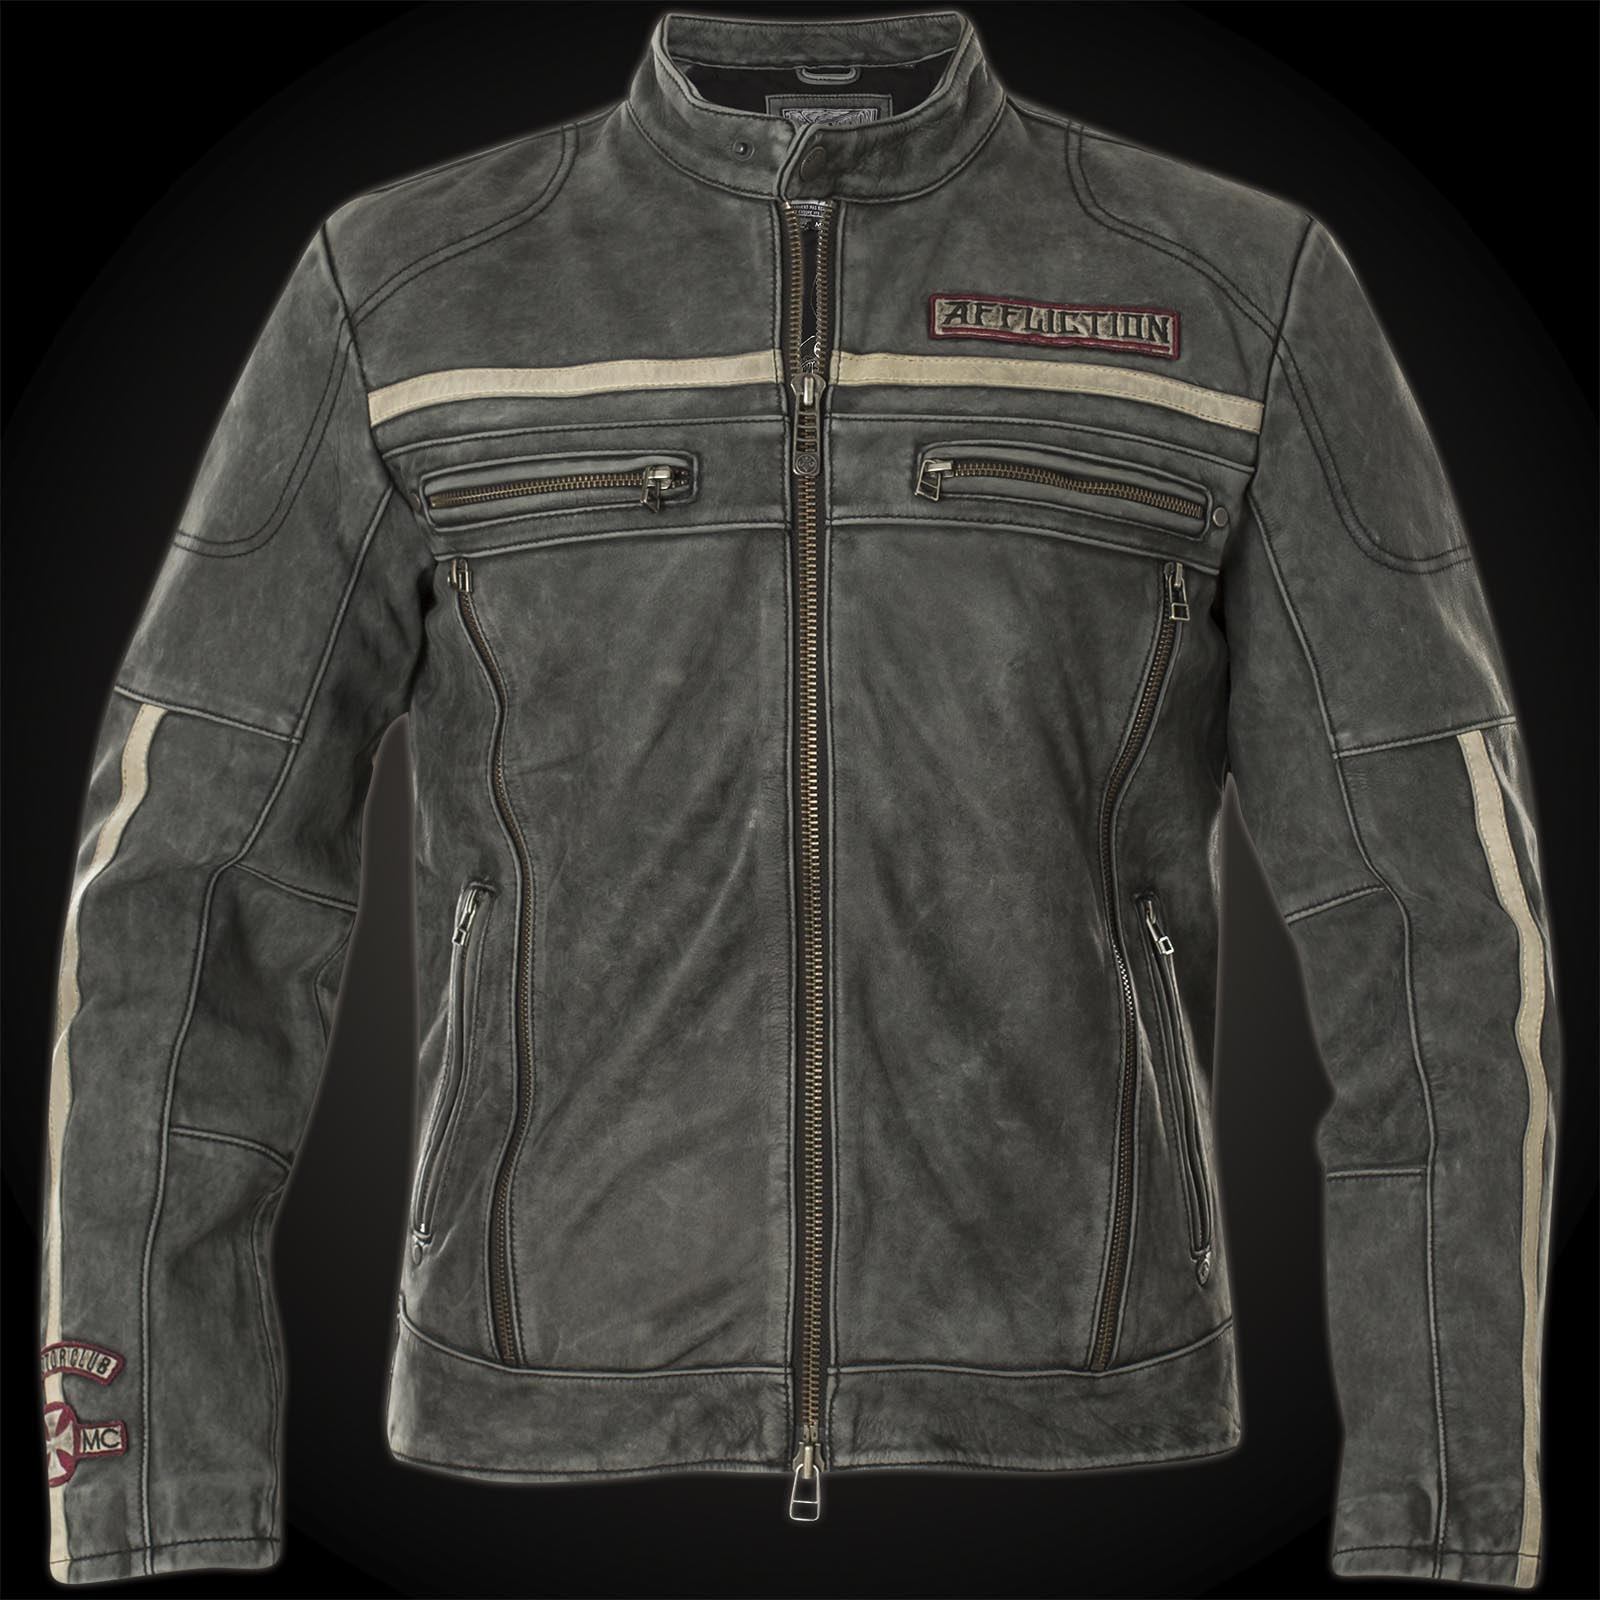 Affliction Black Moon Riders Jacket In Biker Style Made